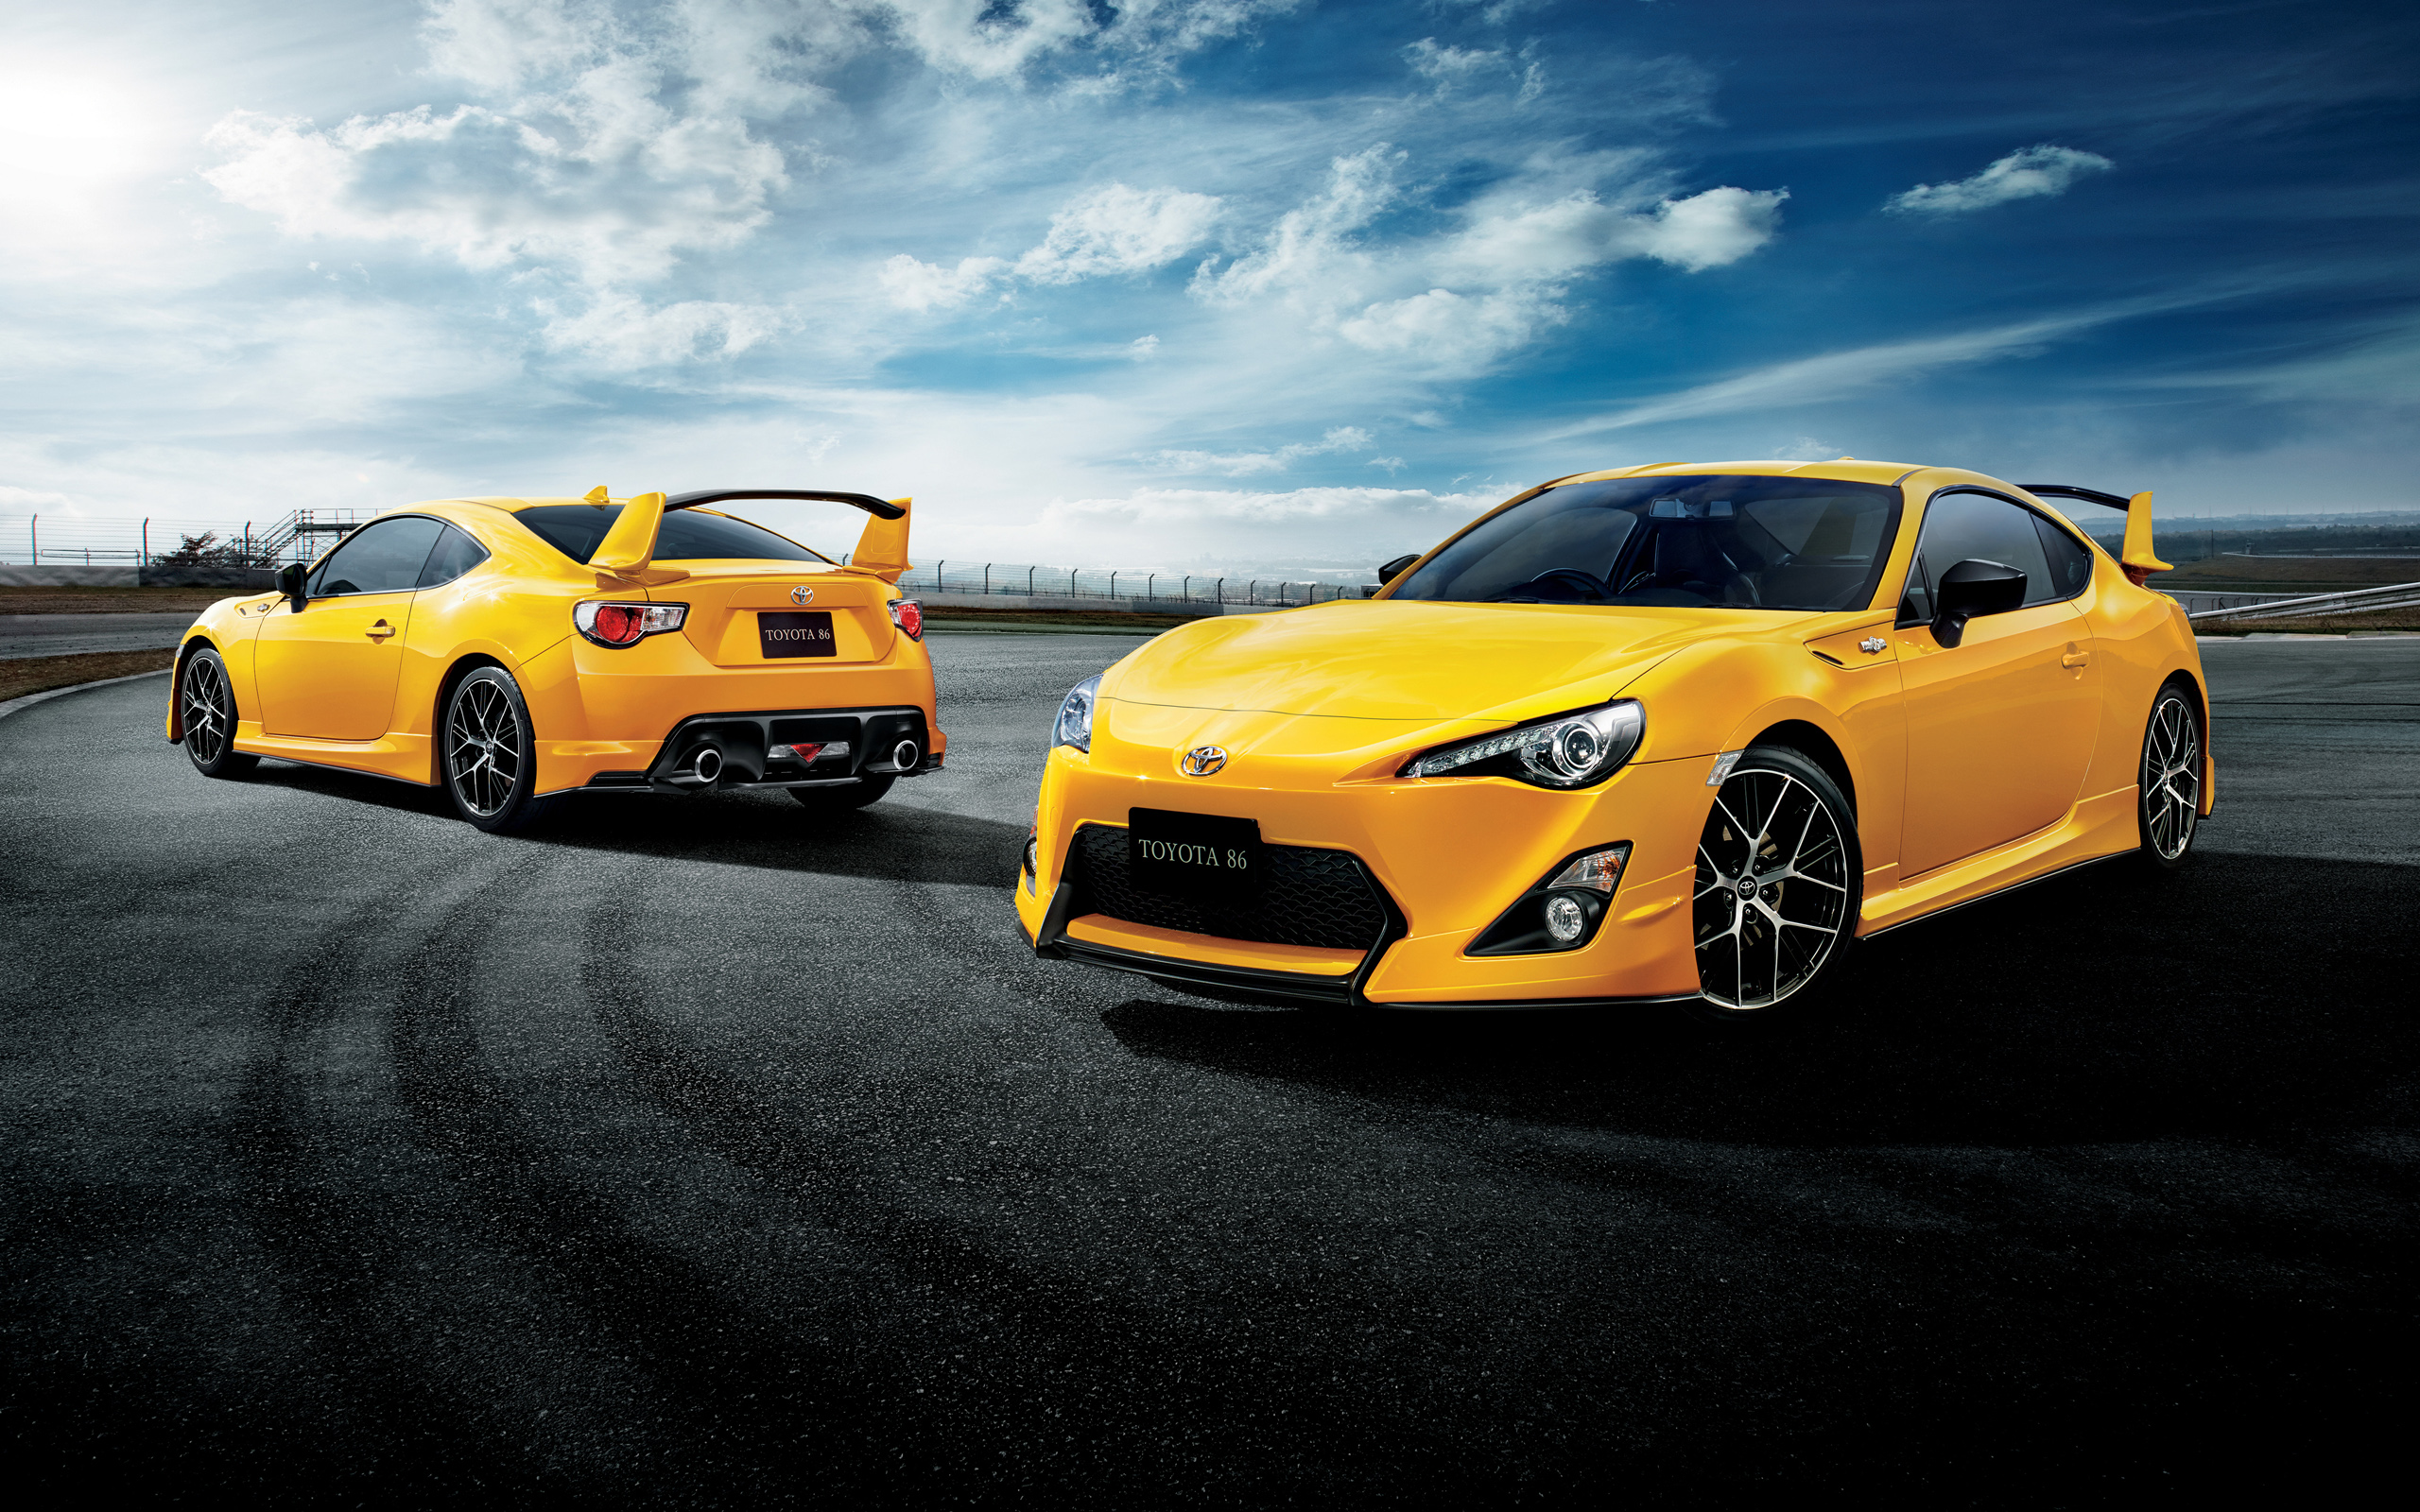 Toyota - Toyota Gt86 2018 Modified , HD Wallpaper & Backgrounds